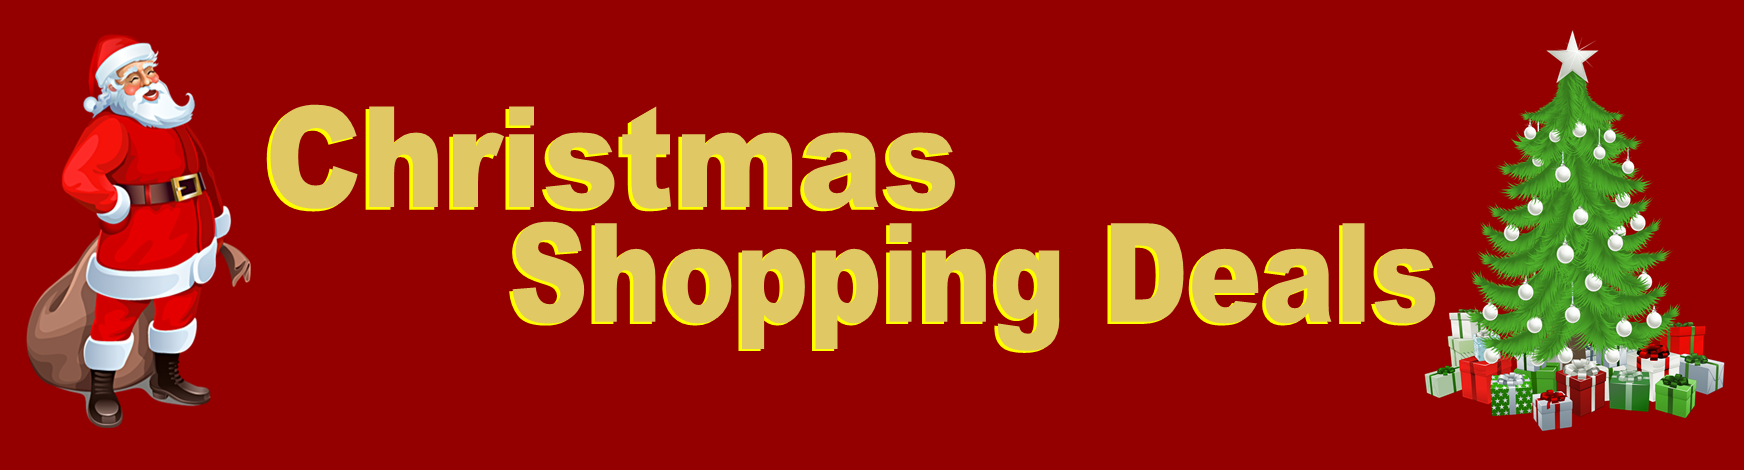 Christmas_Shopping_Deals